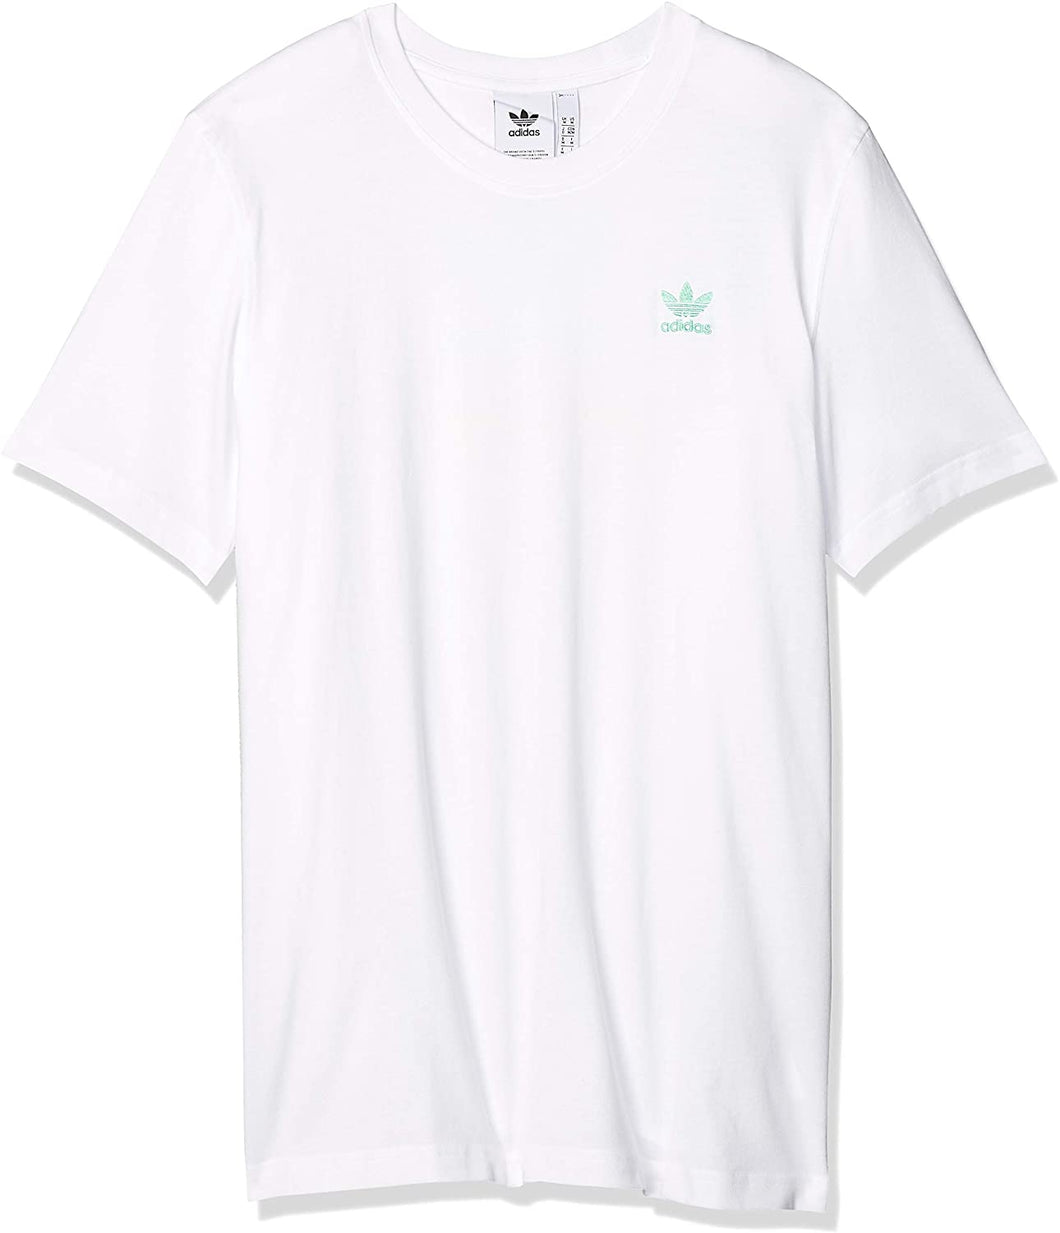 T-Shirt Adidas Front Back Tee FM3348